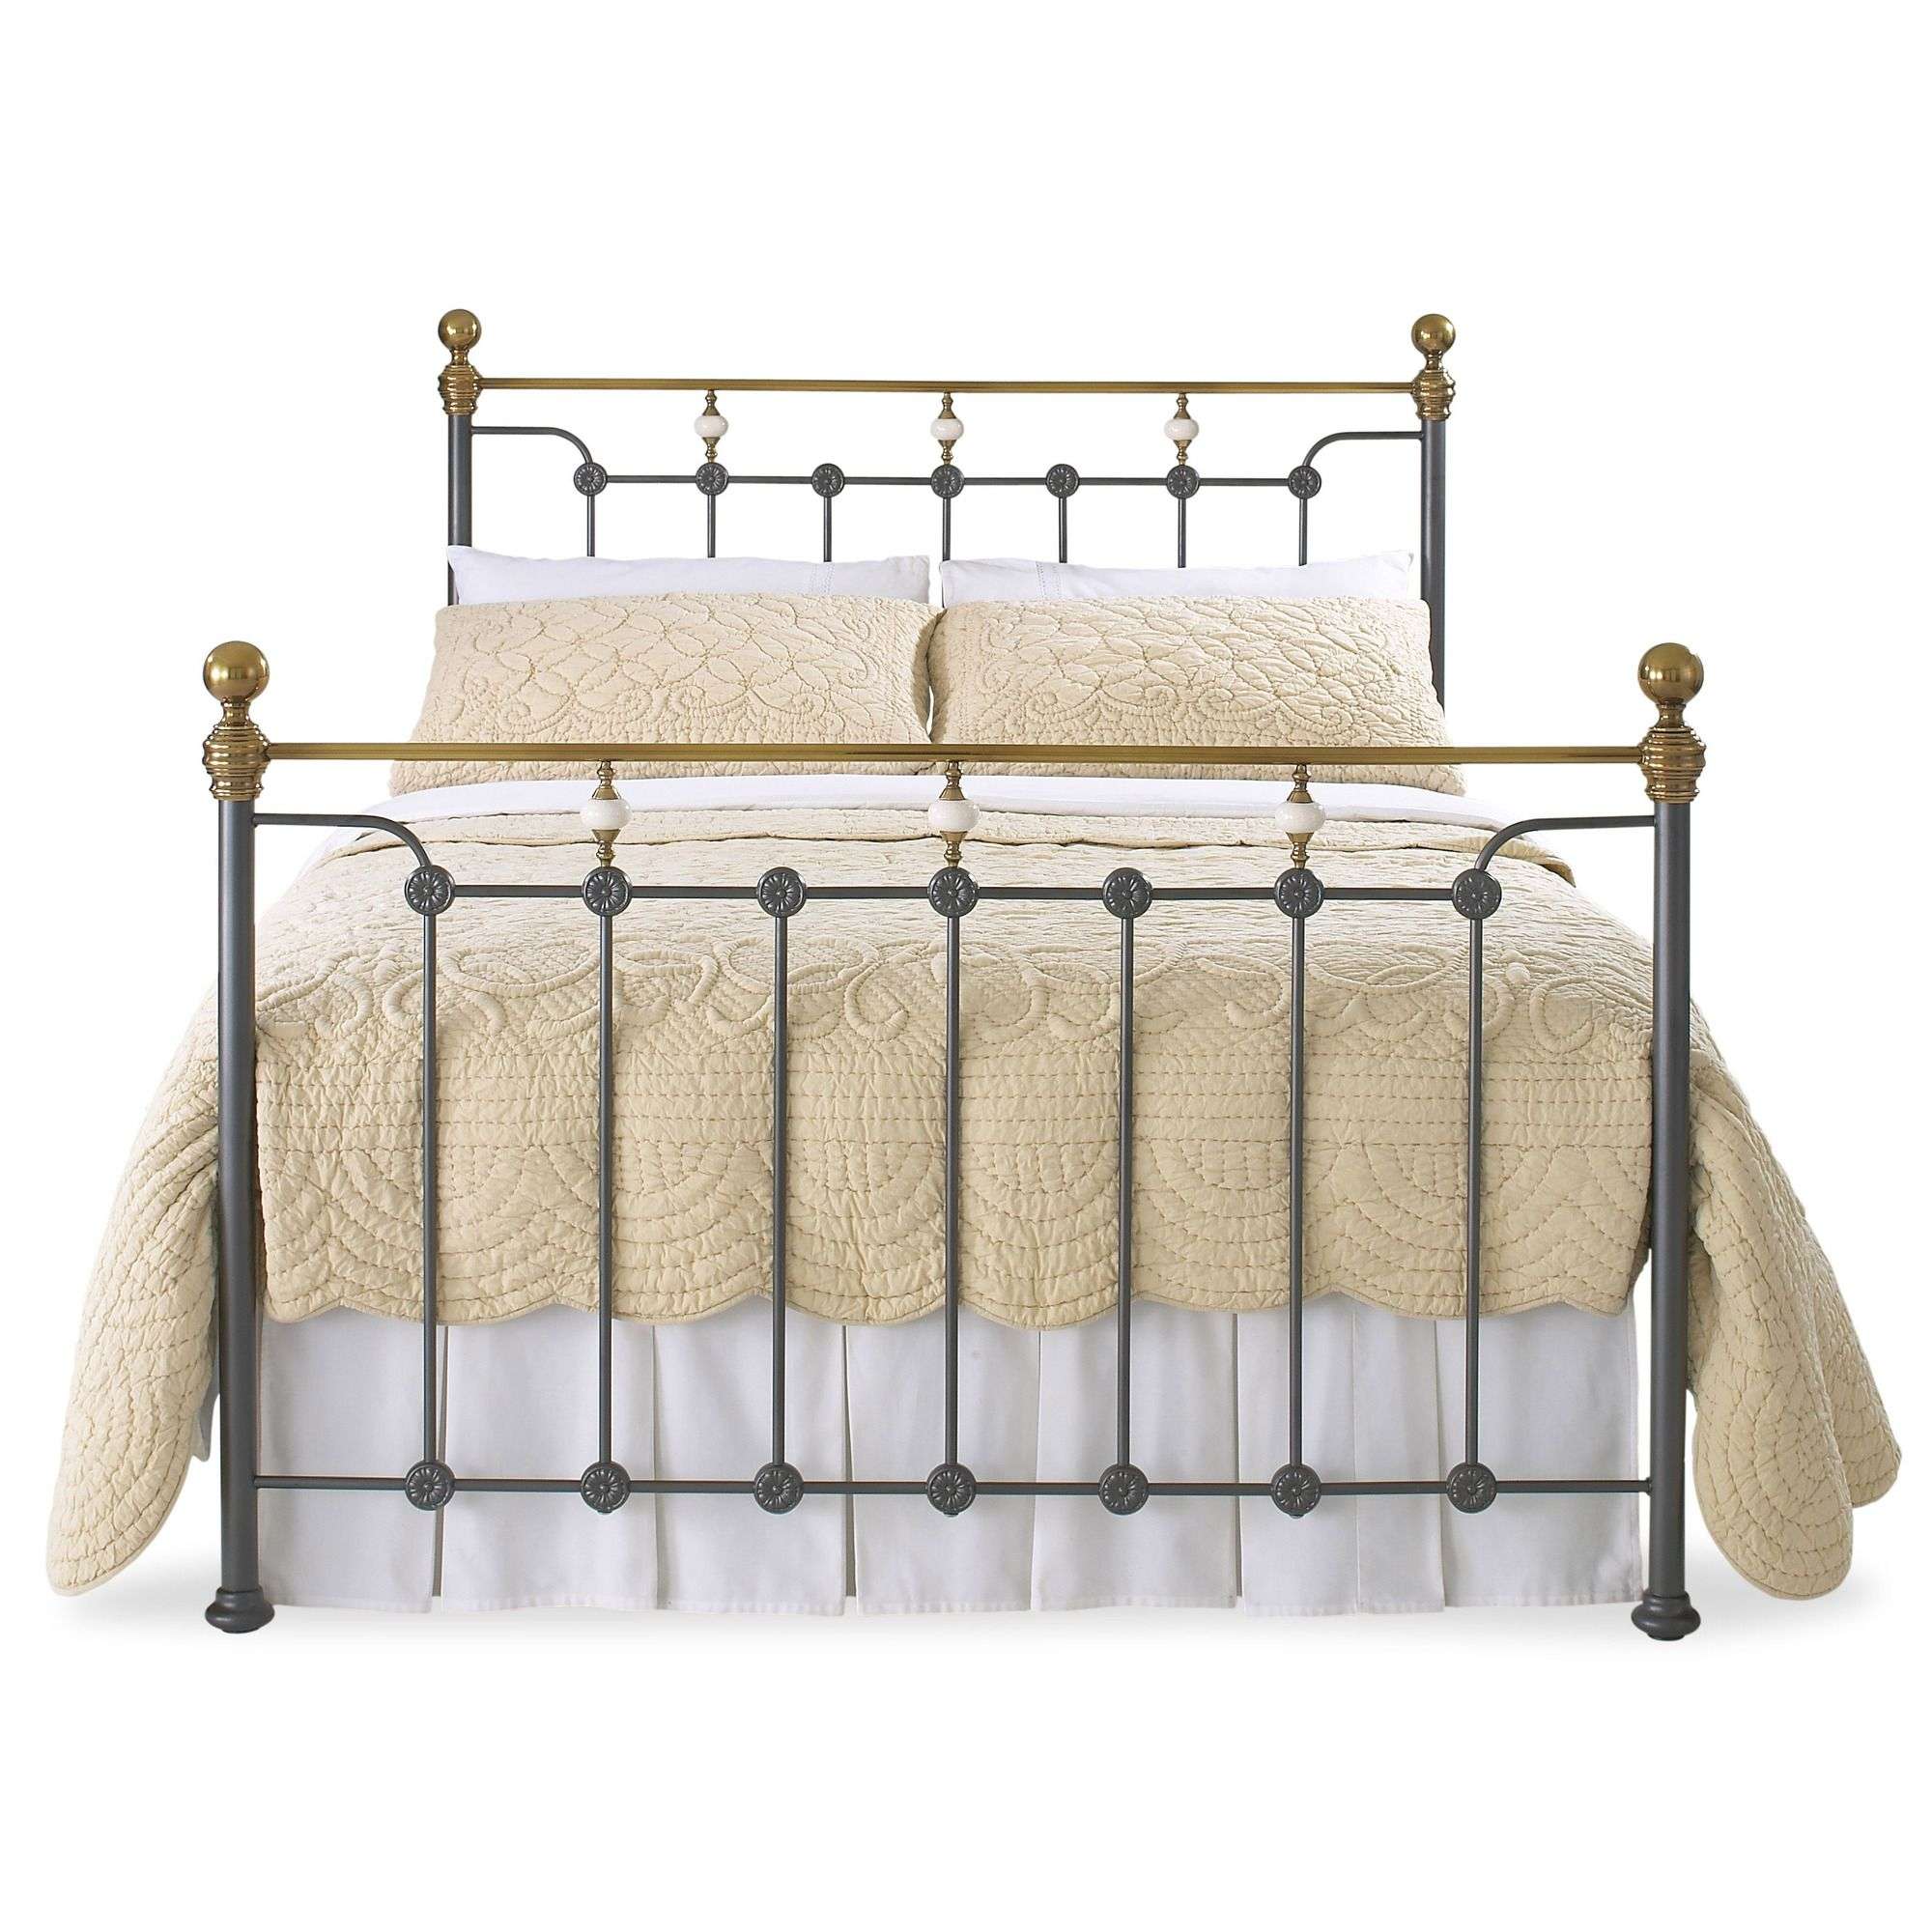 OBC Glenholm Bed Frame - Double - Glossy Ivory at Tesco Direct